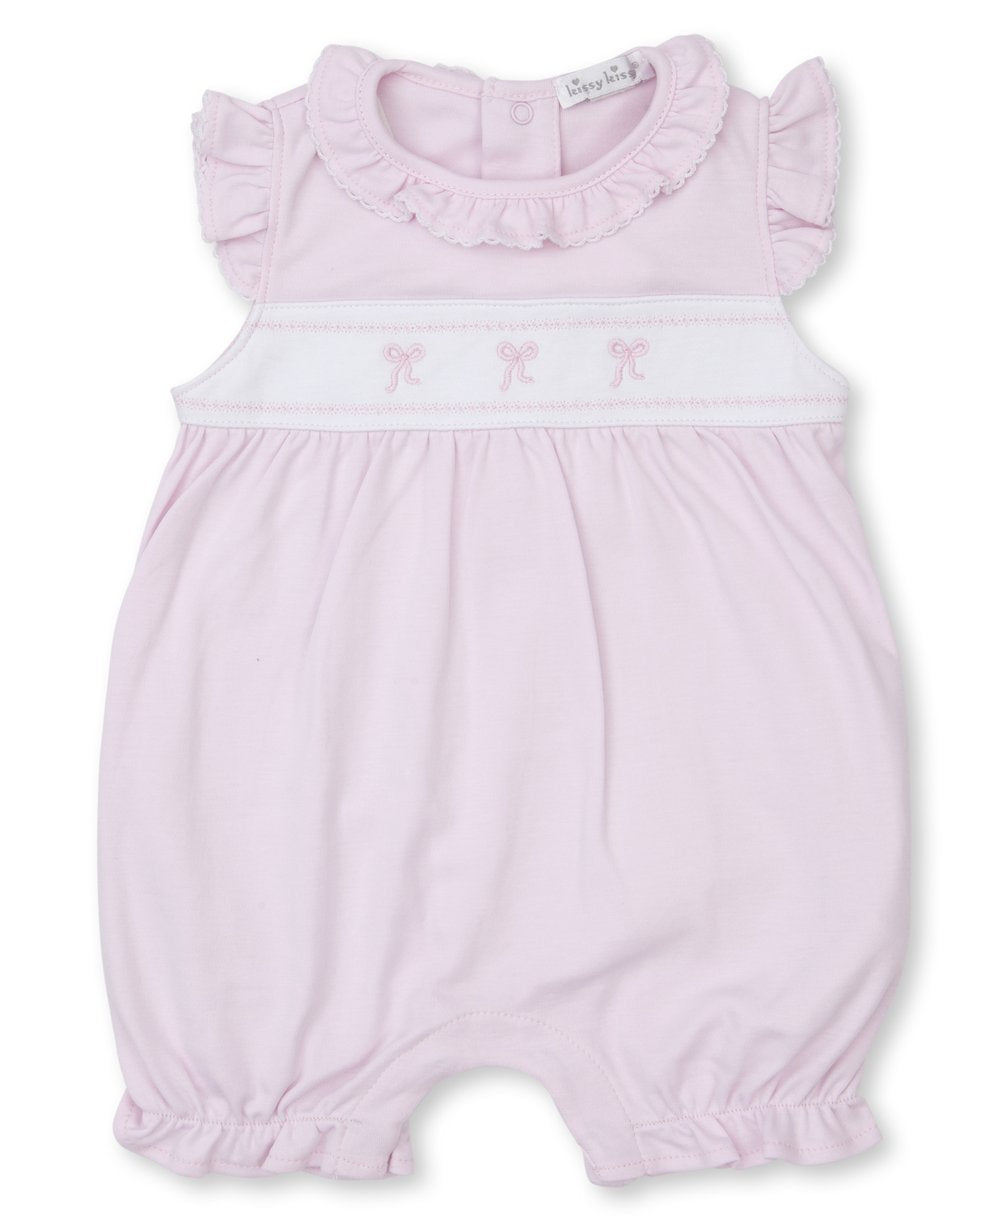 Classic Treasures Bows Embroidered Playsuit